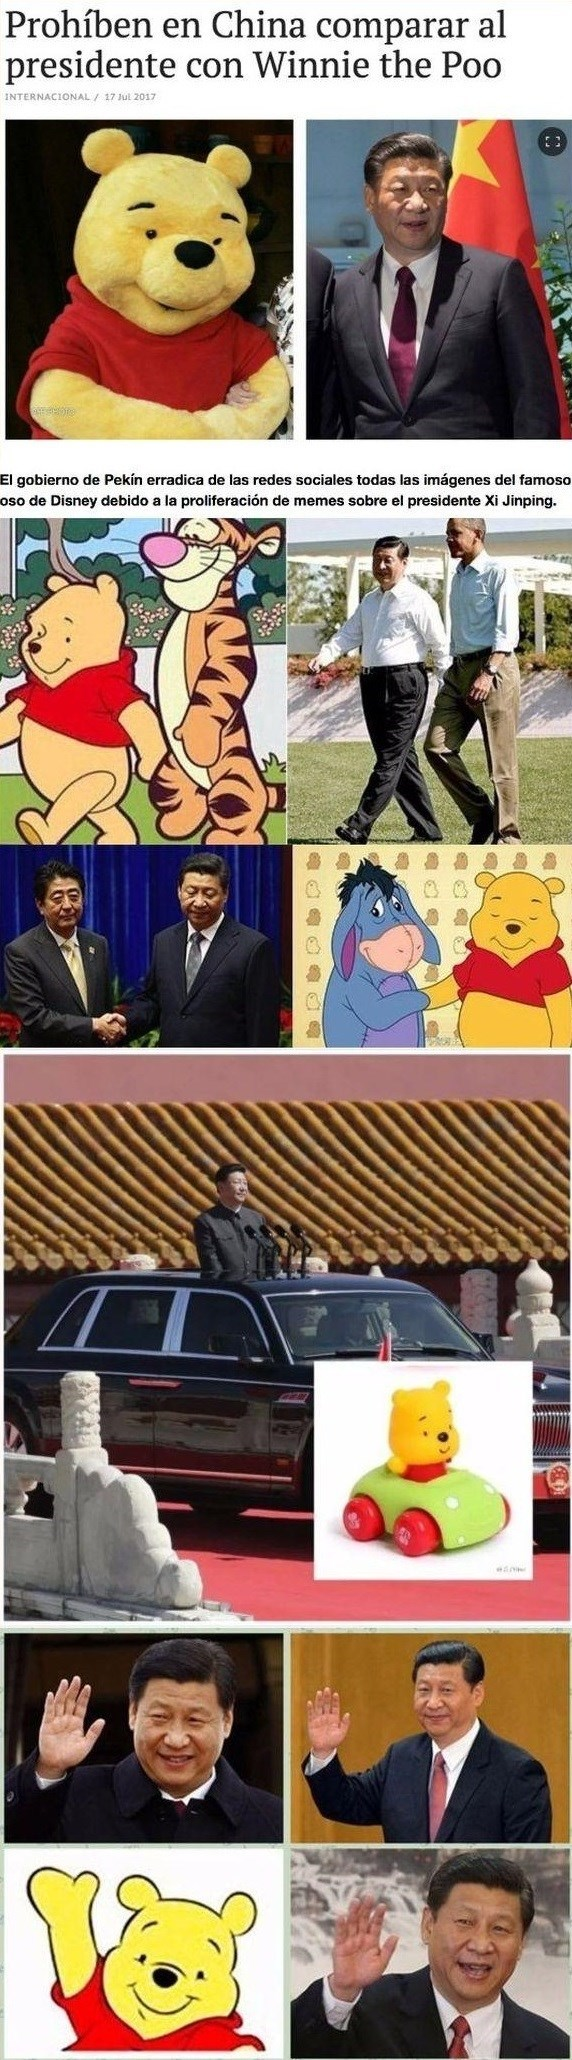 gobierno chino prohibe comparar presidente con winnie poo